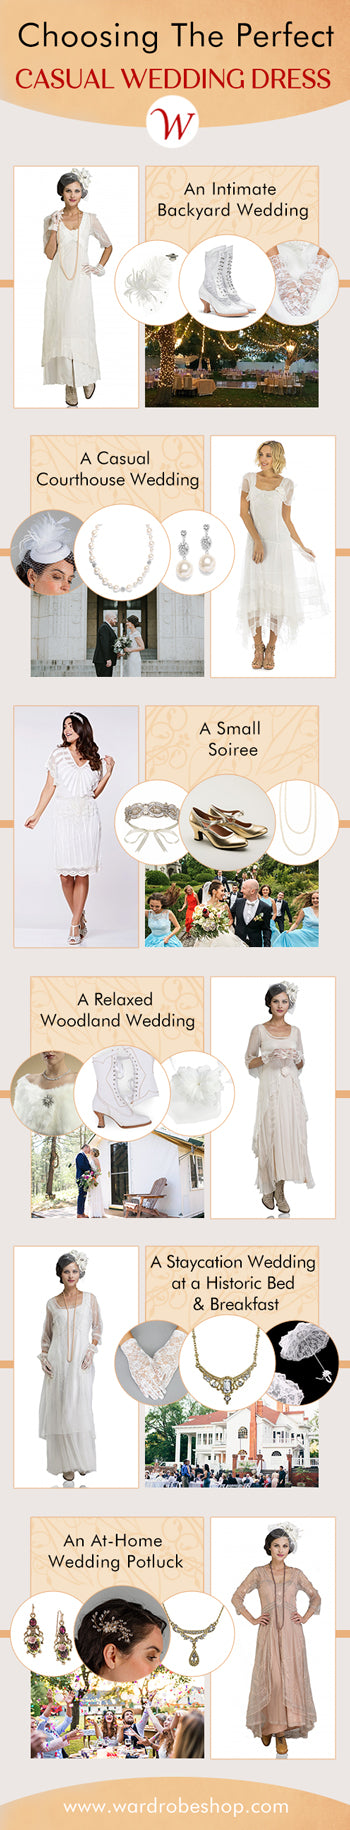 Casual Wedding infographic